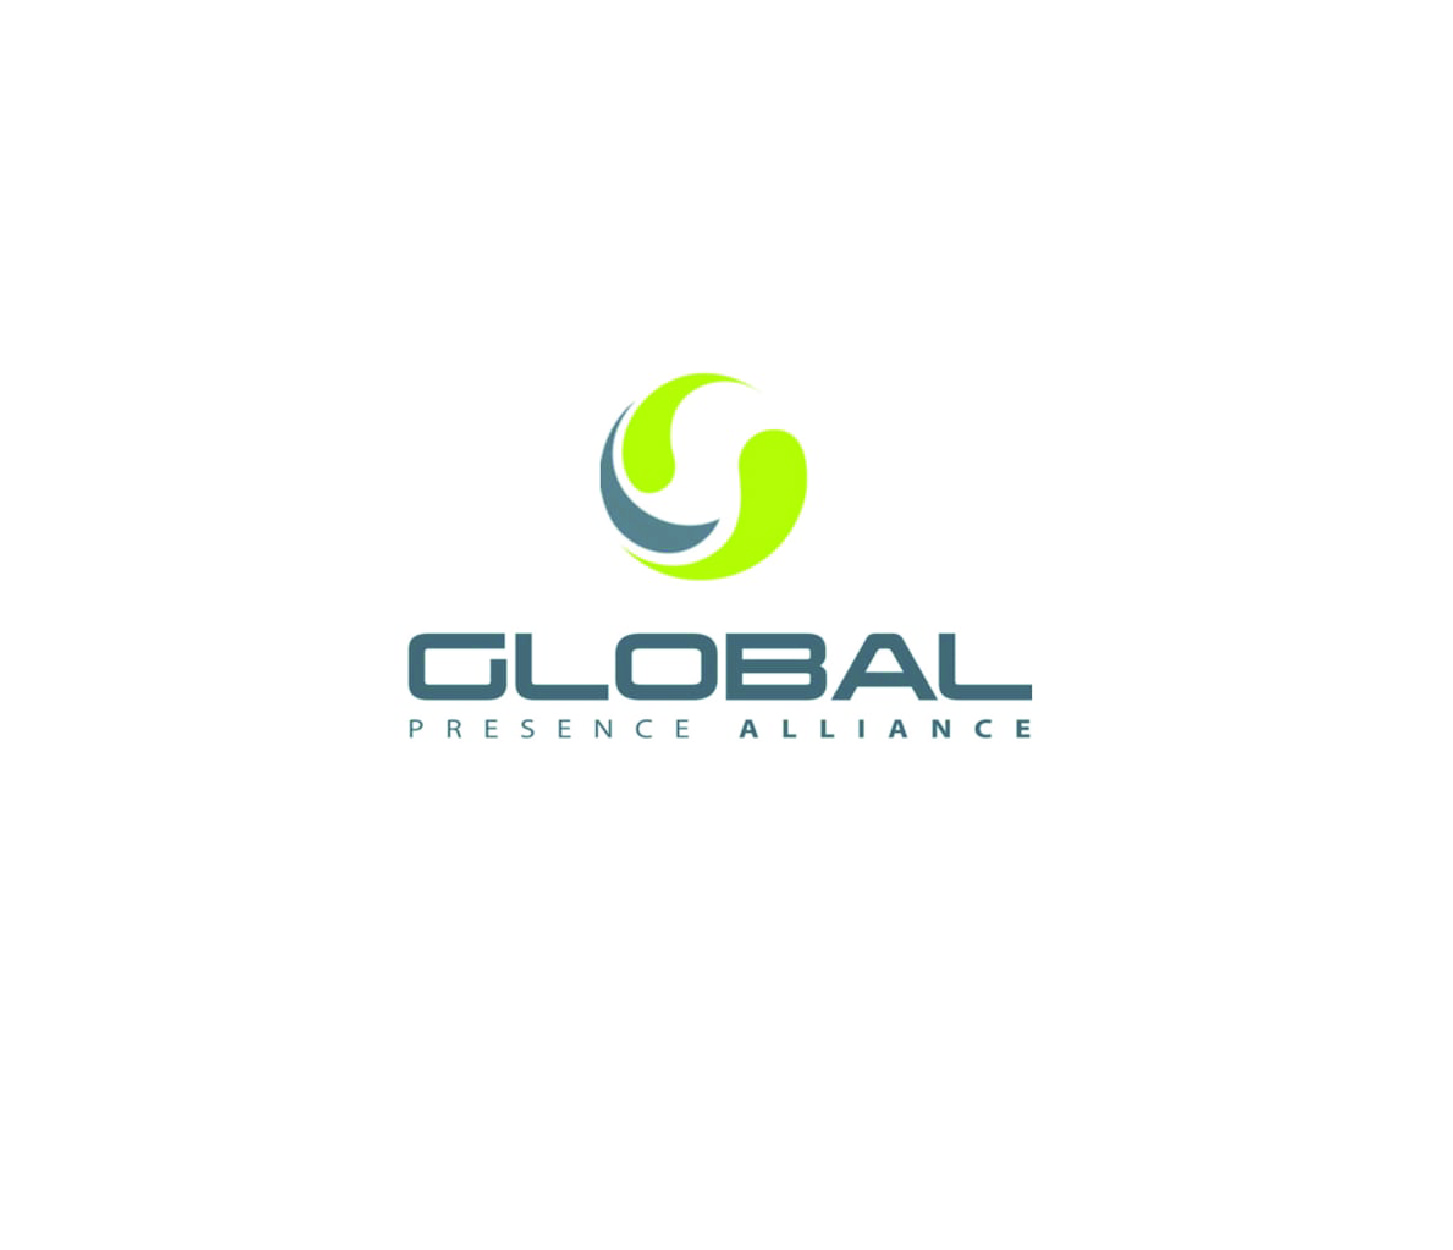 Global Presence Alliance